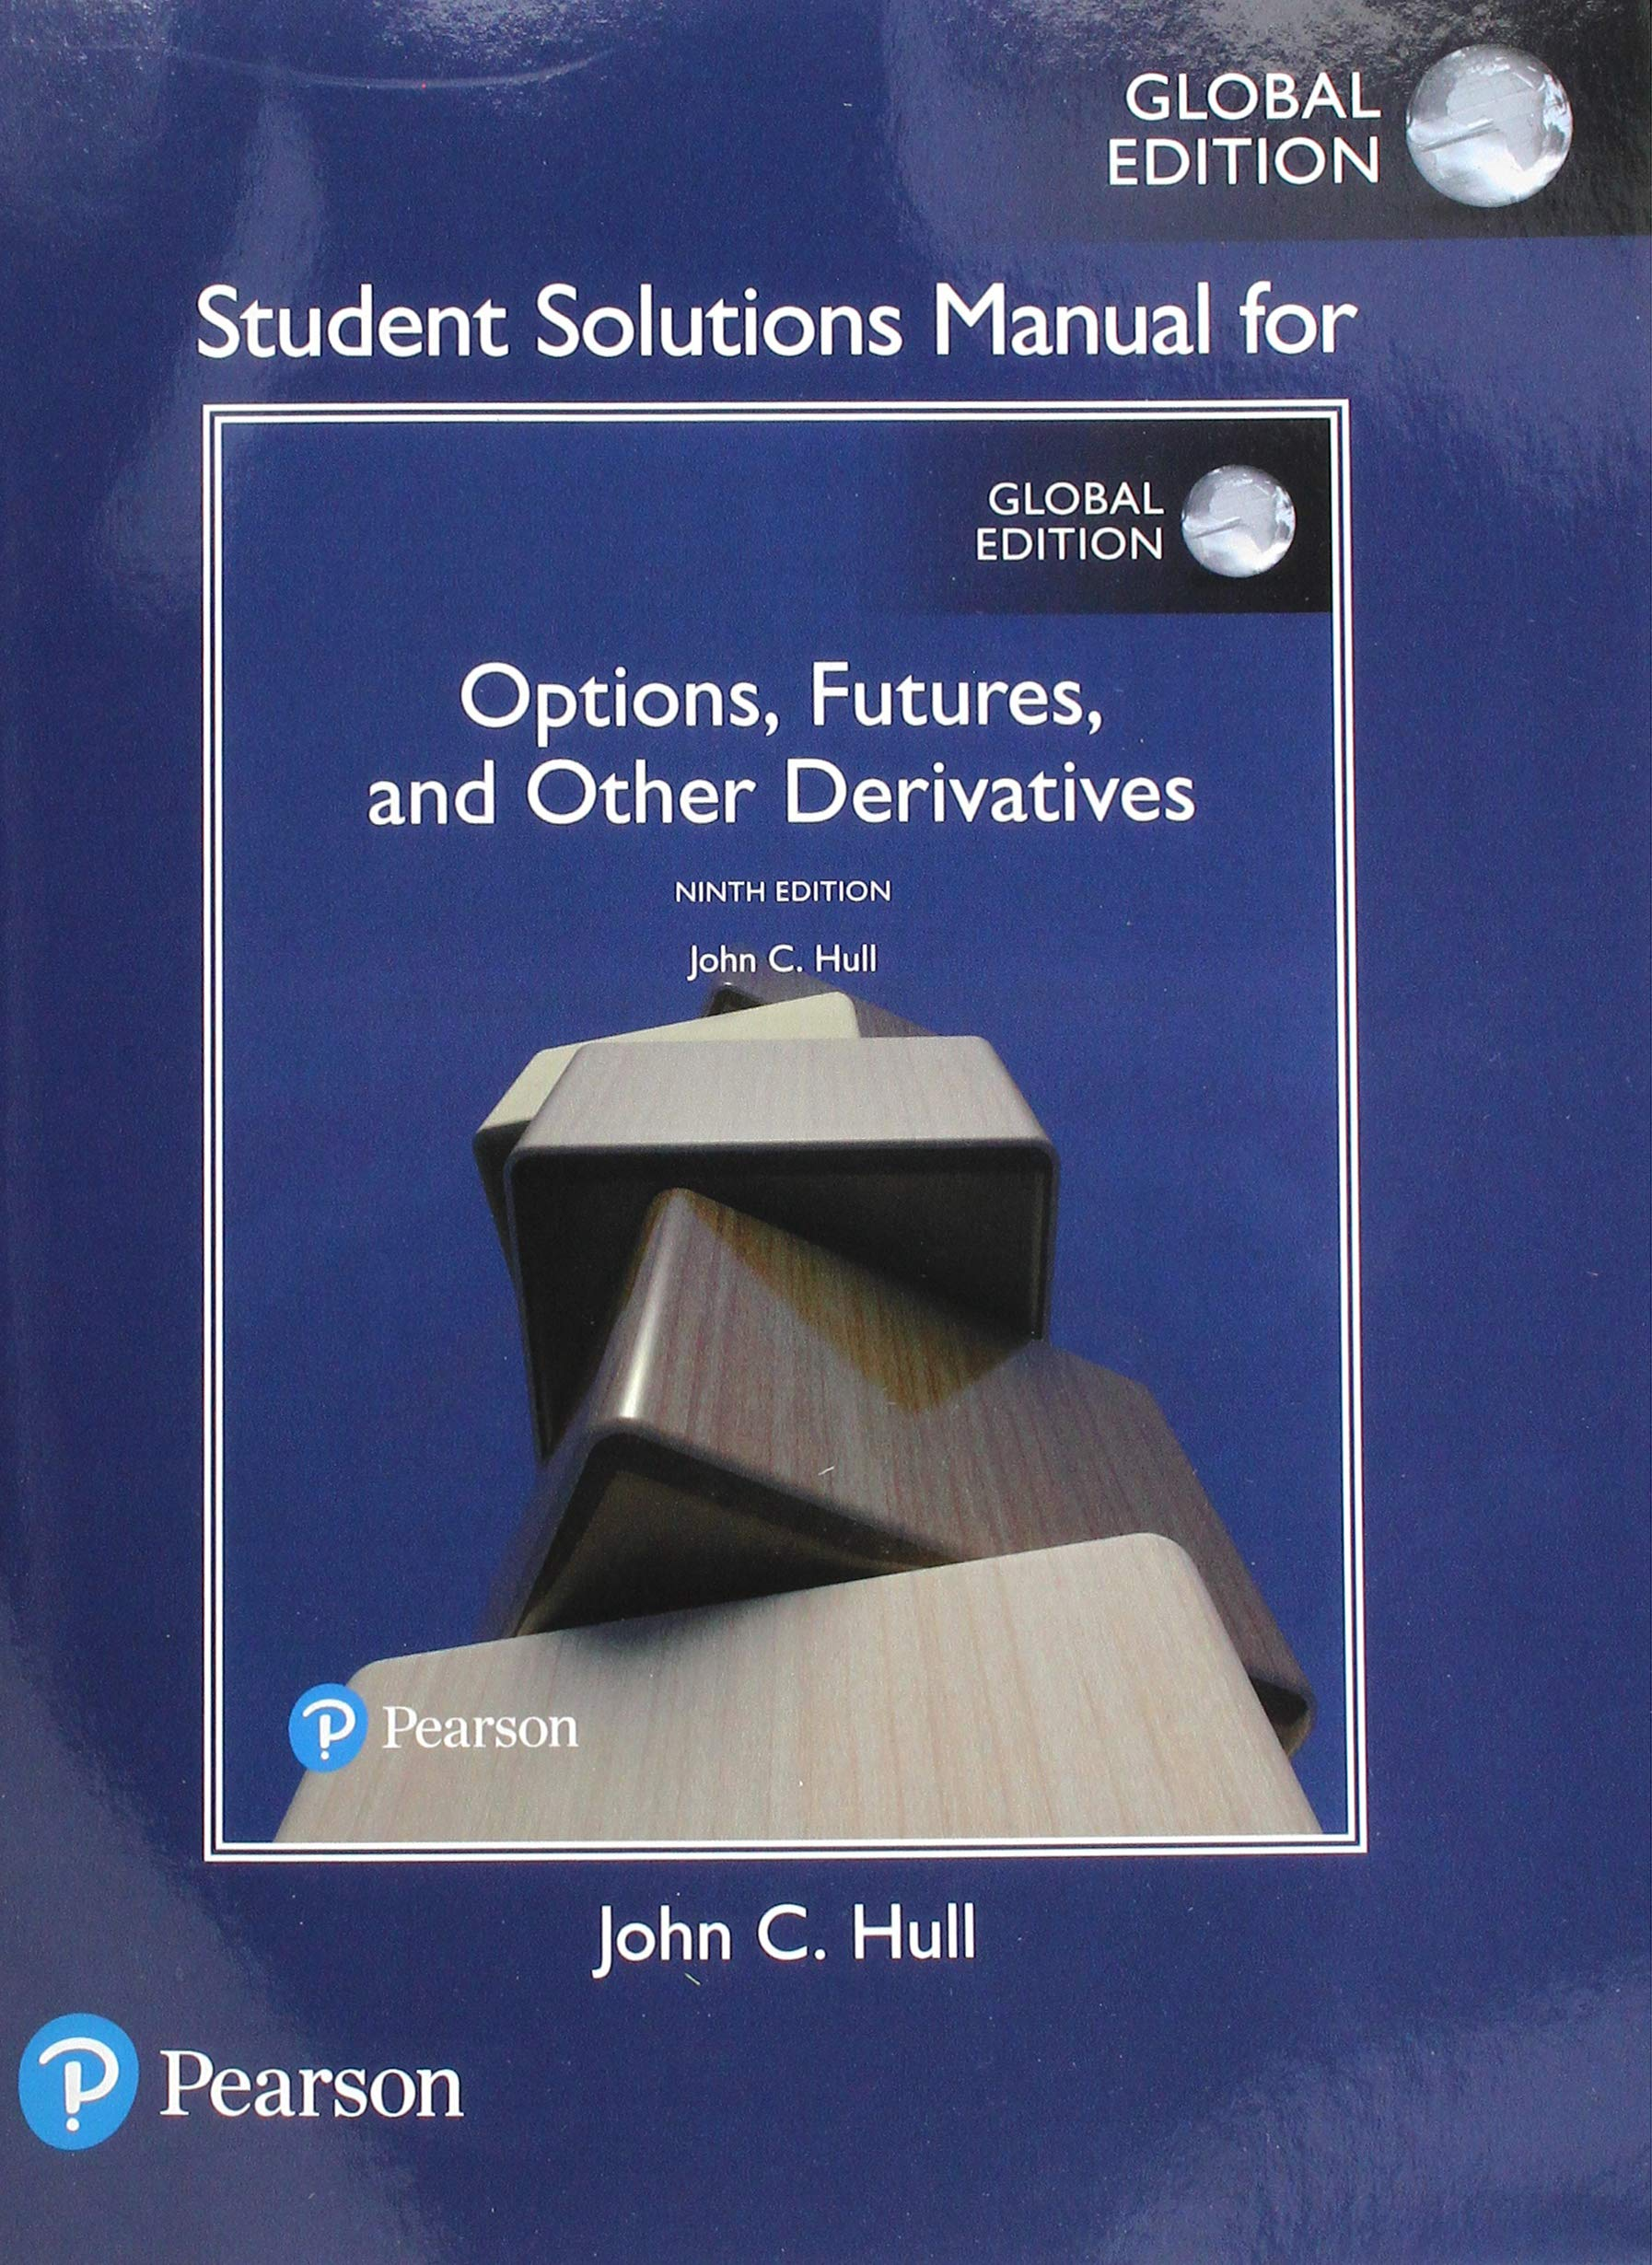 Student Solutions Manual for Options, Futures, and Other Derivatives,  Global Edition: Amazon.co.uk: John C. Hull: 9781292249179: Books